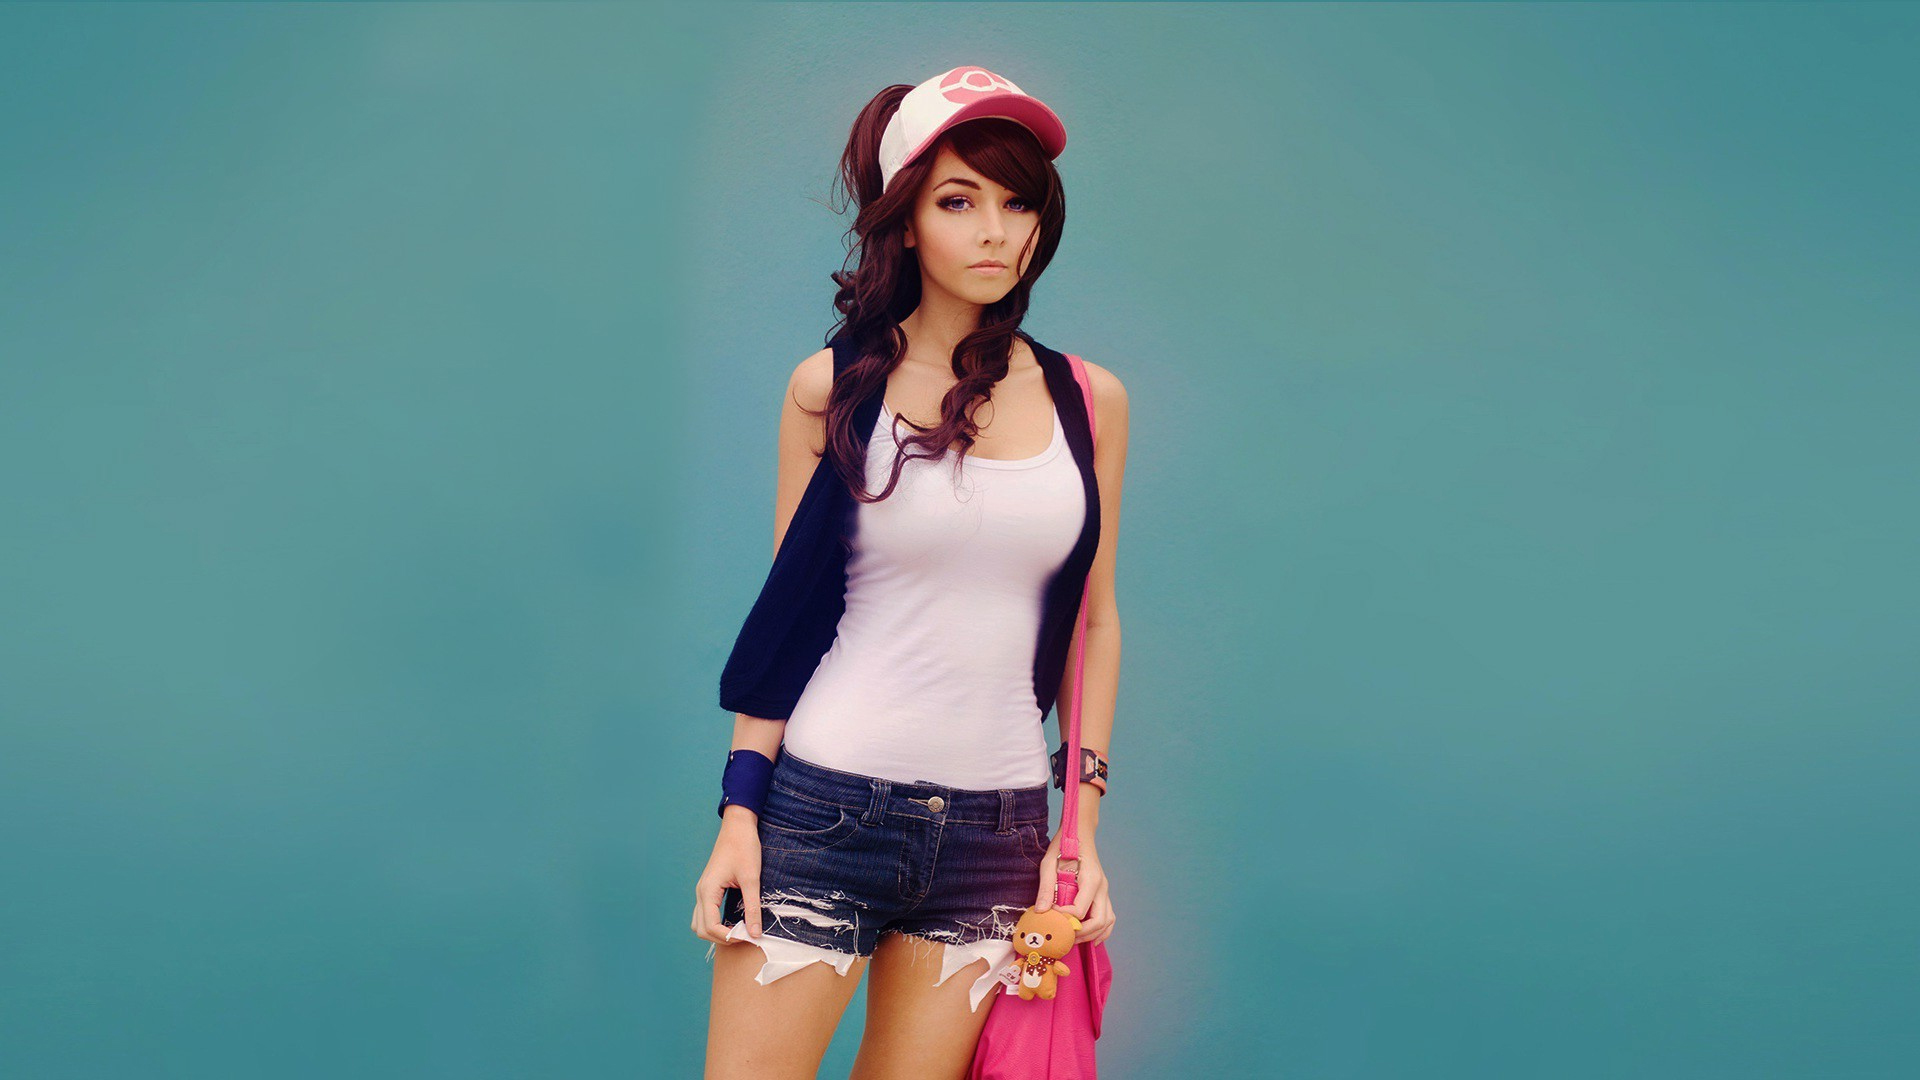 Sad Girl Wallpapers Widescreen Hq Definition Wallpapers Of Sad